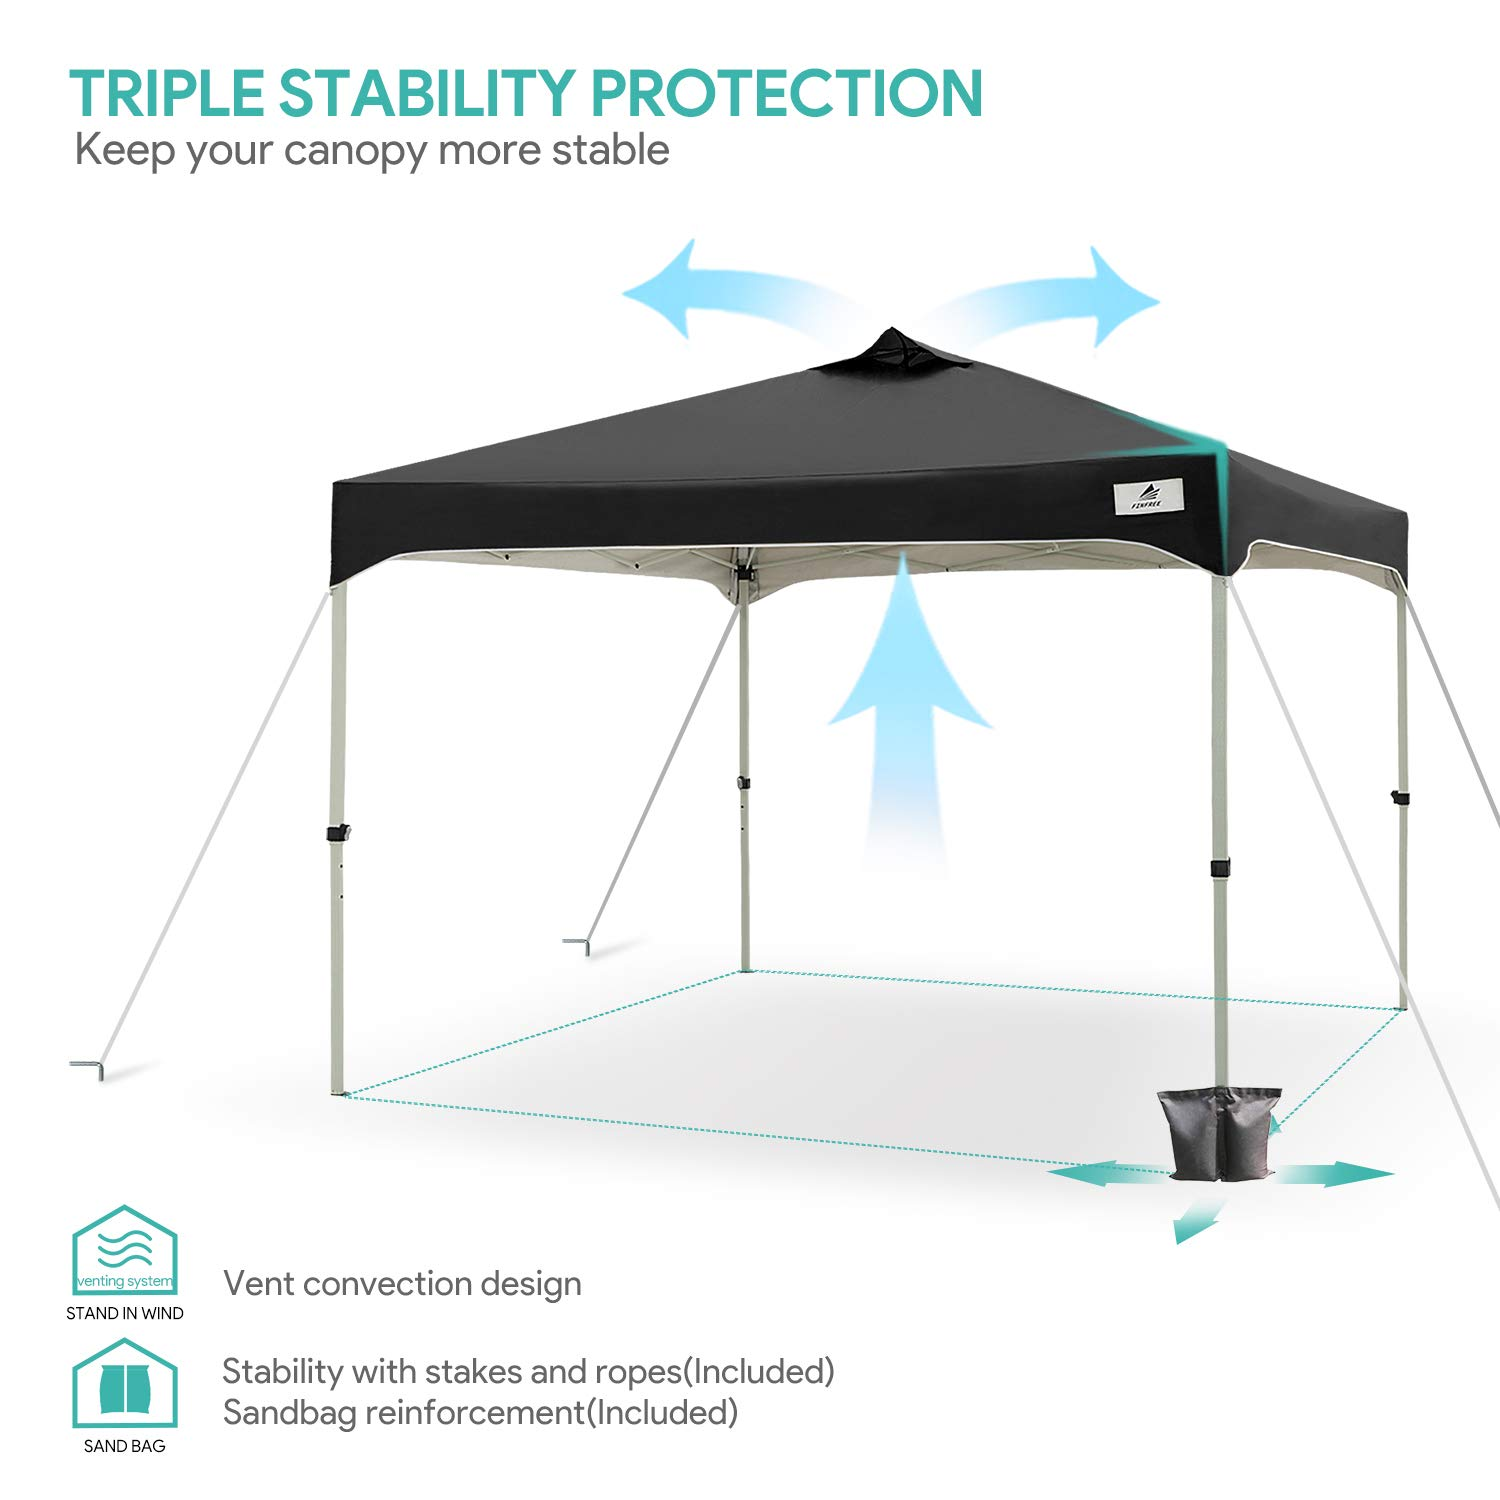 FinFree 10×10 FT Compact Ez Pop up Canopy Tent Outdoor, Folding Canopy Tent, Instant Canopy with Wheeled Carry Bag, Black